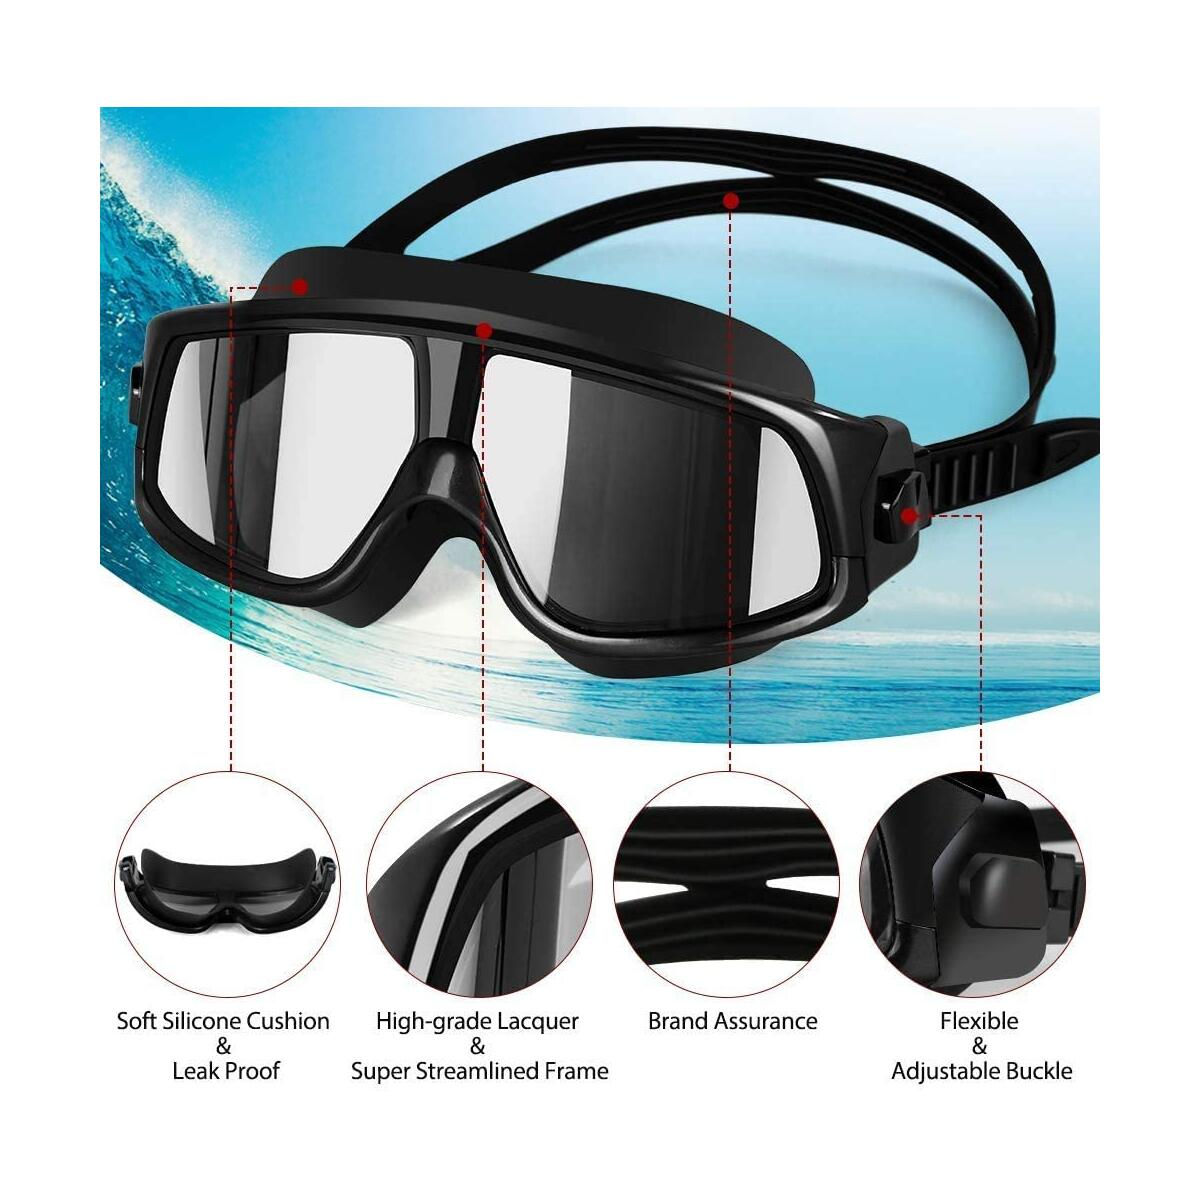 Aquior Swim Goggles, Clear Anti-Fog Safety Goggles, Streamlined Design Glass Leakproof UV Protection with Soft Silicone Nose Bride, Sport Goggles, Swimming Glass for Adult Youth Men Women